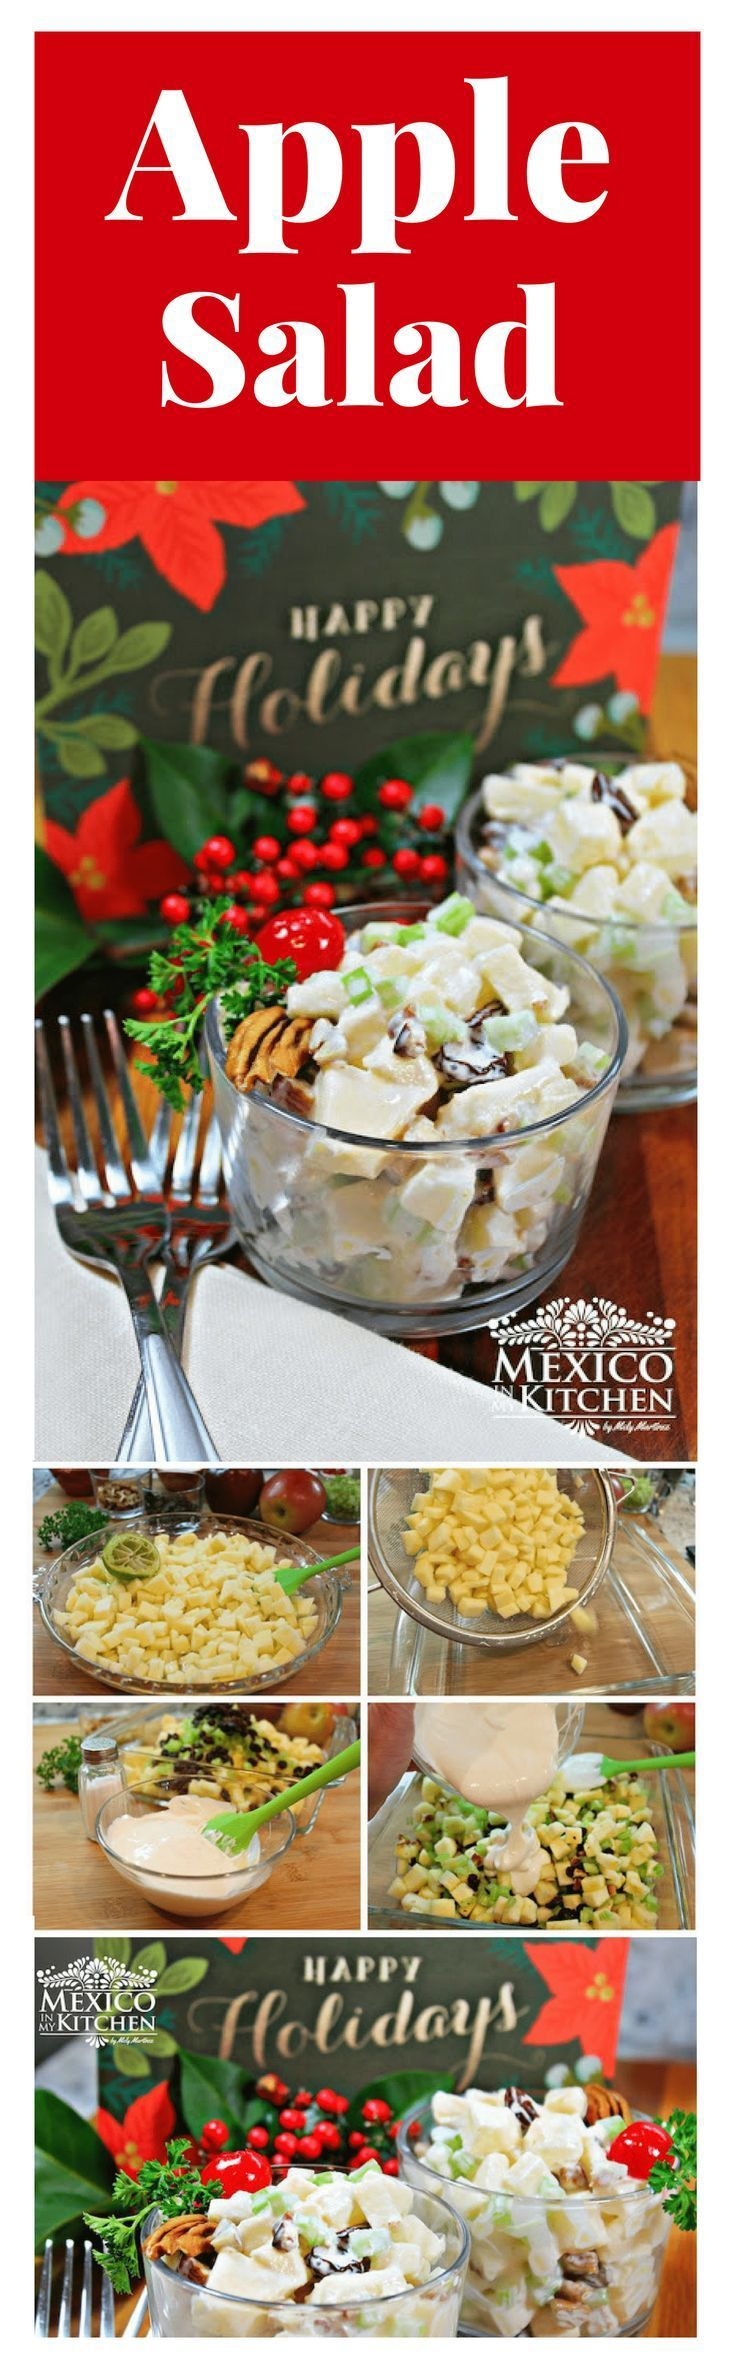 201 mejores imgenes de mexican christmas food recipe en pinterest every year around this time i try to post recipes that are traditional for the christmas dinner some are known all over mexico and others forumfinder Image collections